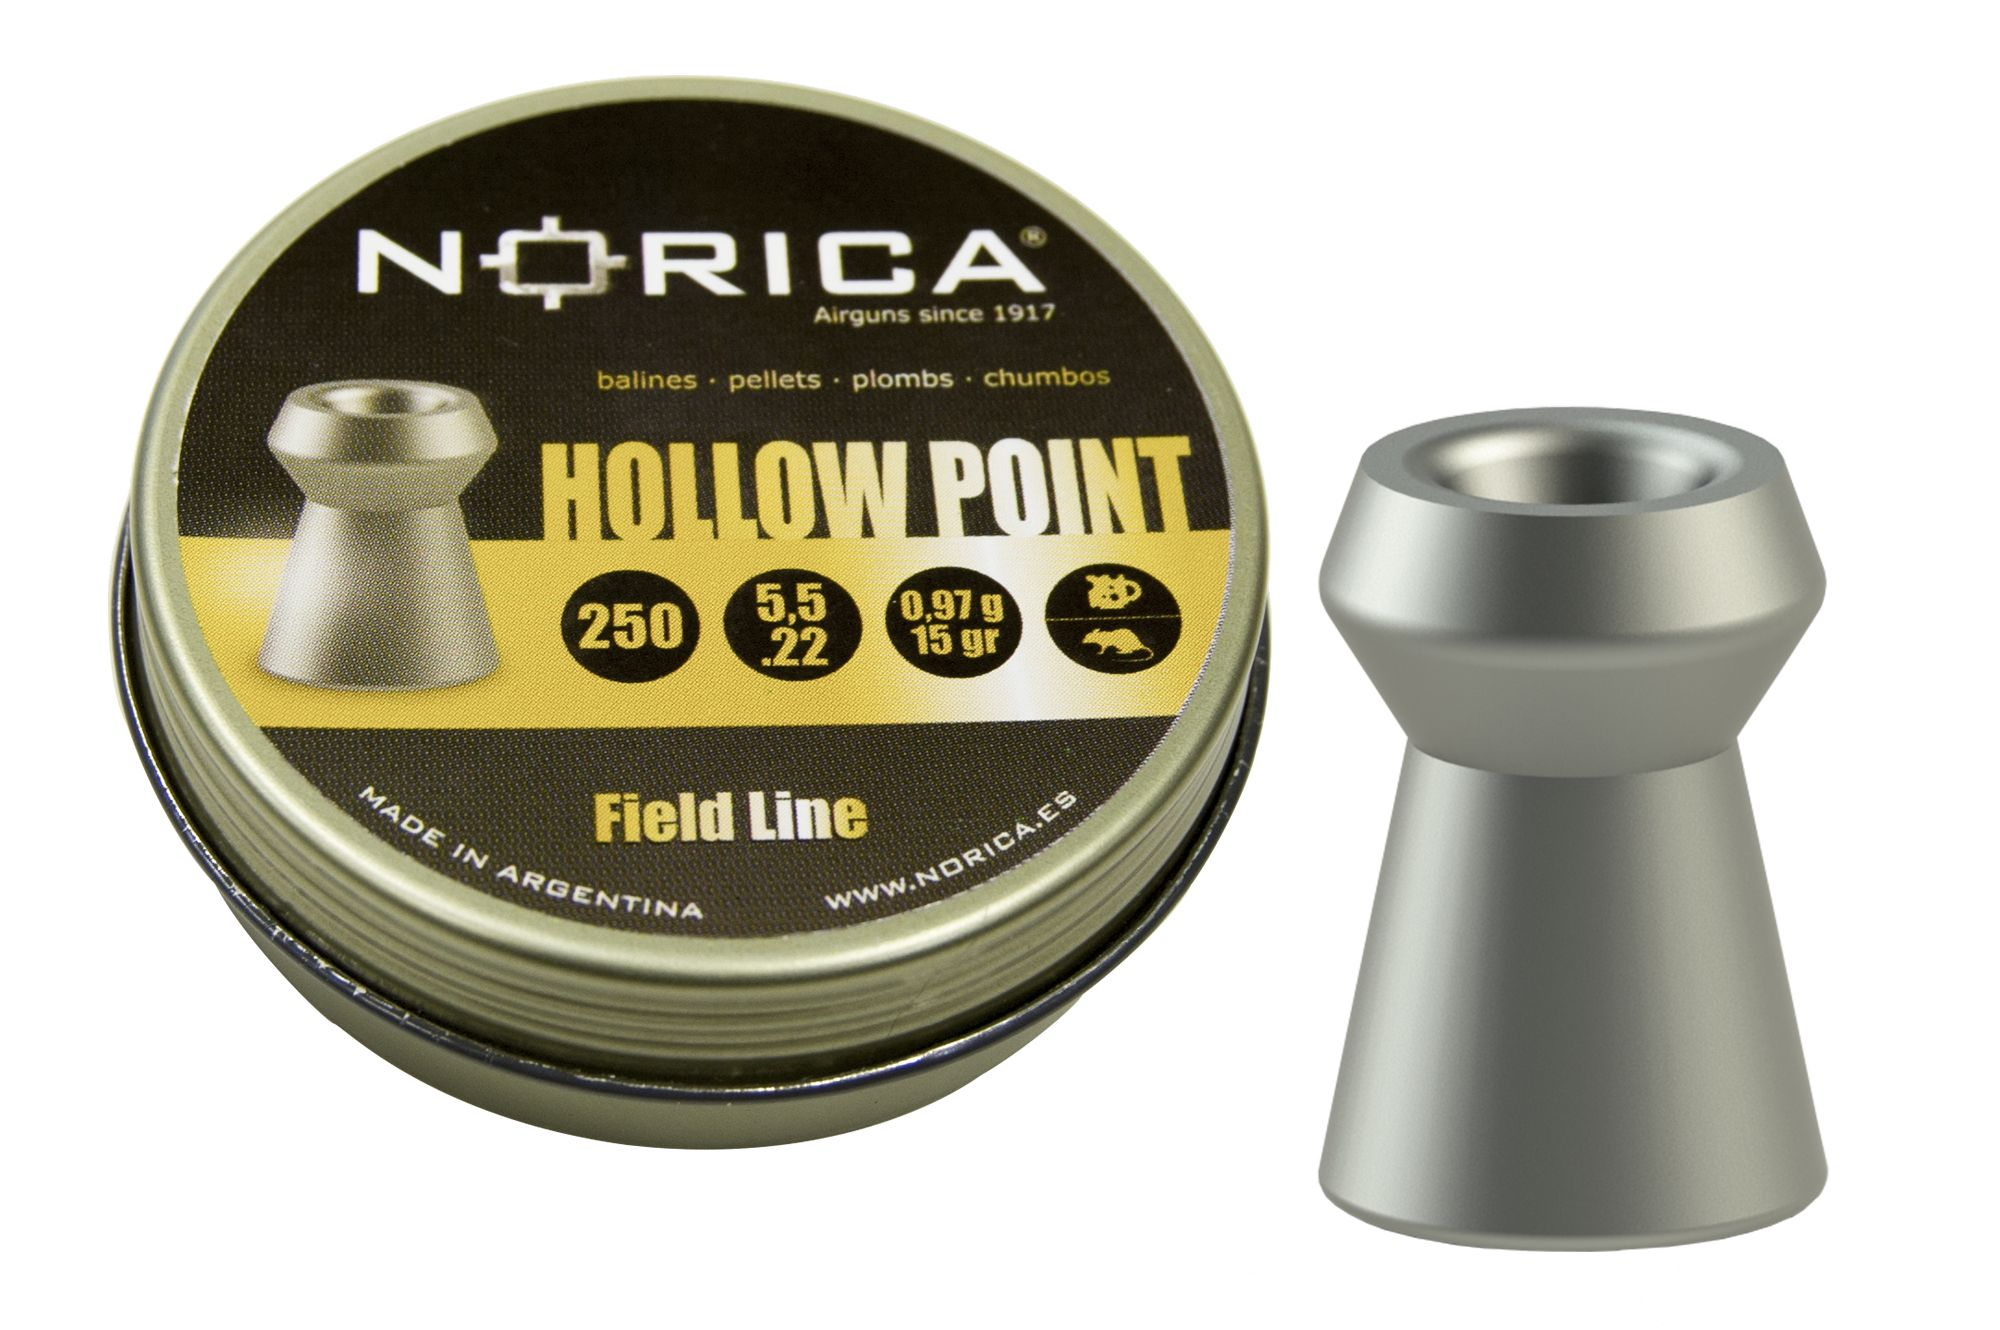 Norica Hollow Point (Tin) .22 (5.5mm)